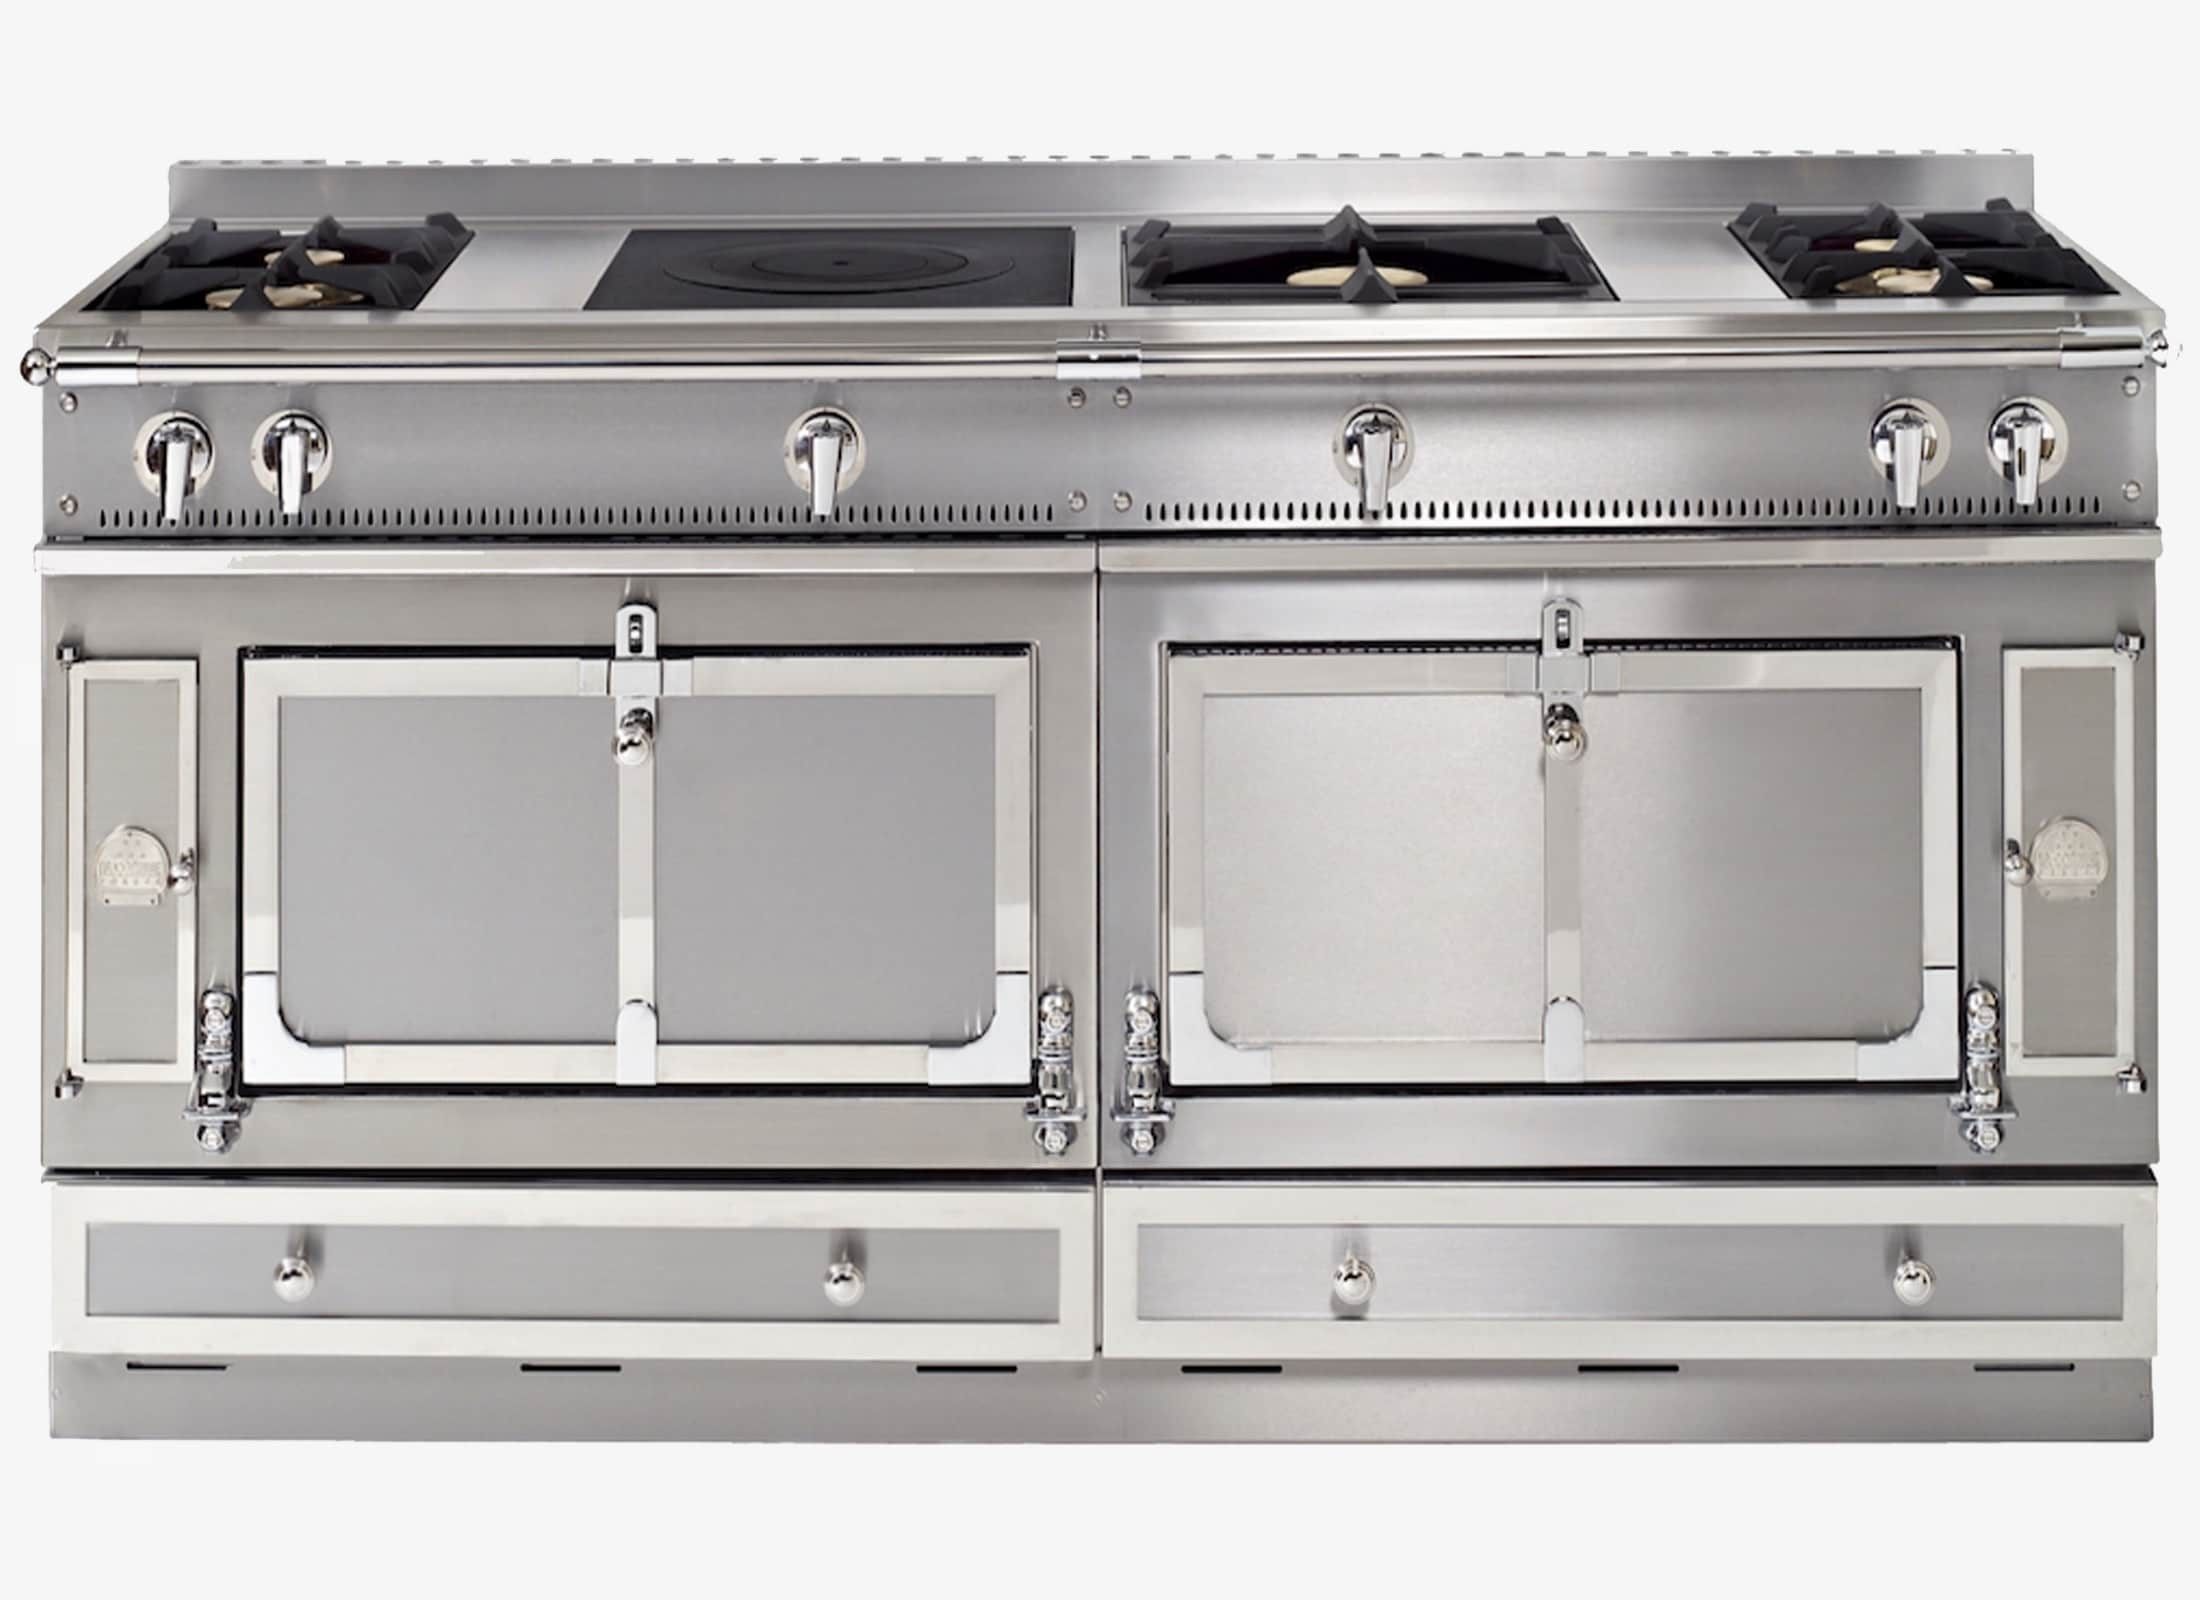 The Château 165 kitchen range brings together two vaulted ovens of different sizes, to allow you to make the most delicate meals. The stainless-steel hob offers many configuration possibilities to best match your cooking habits.